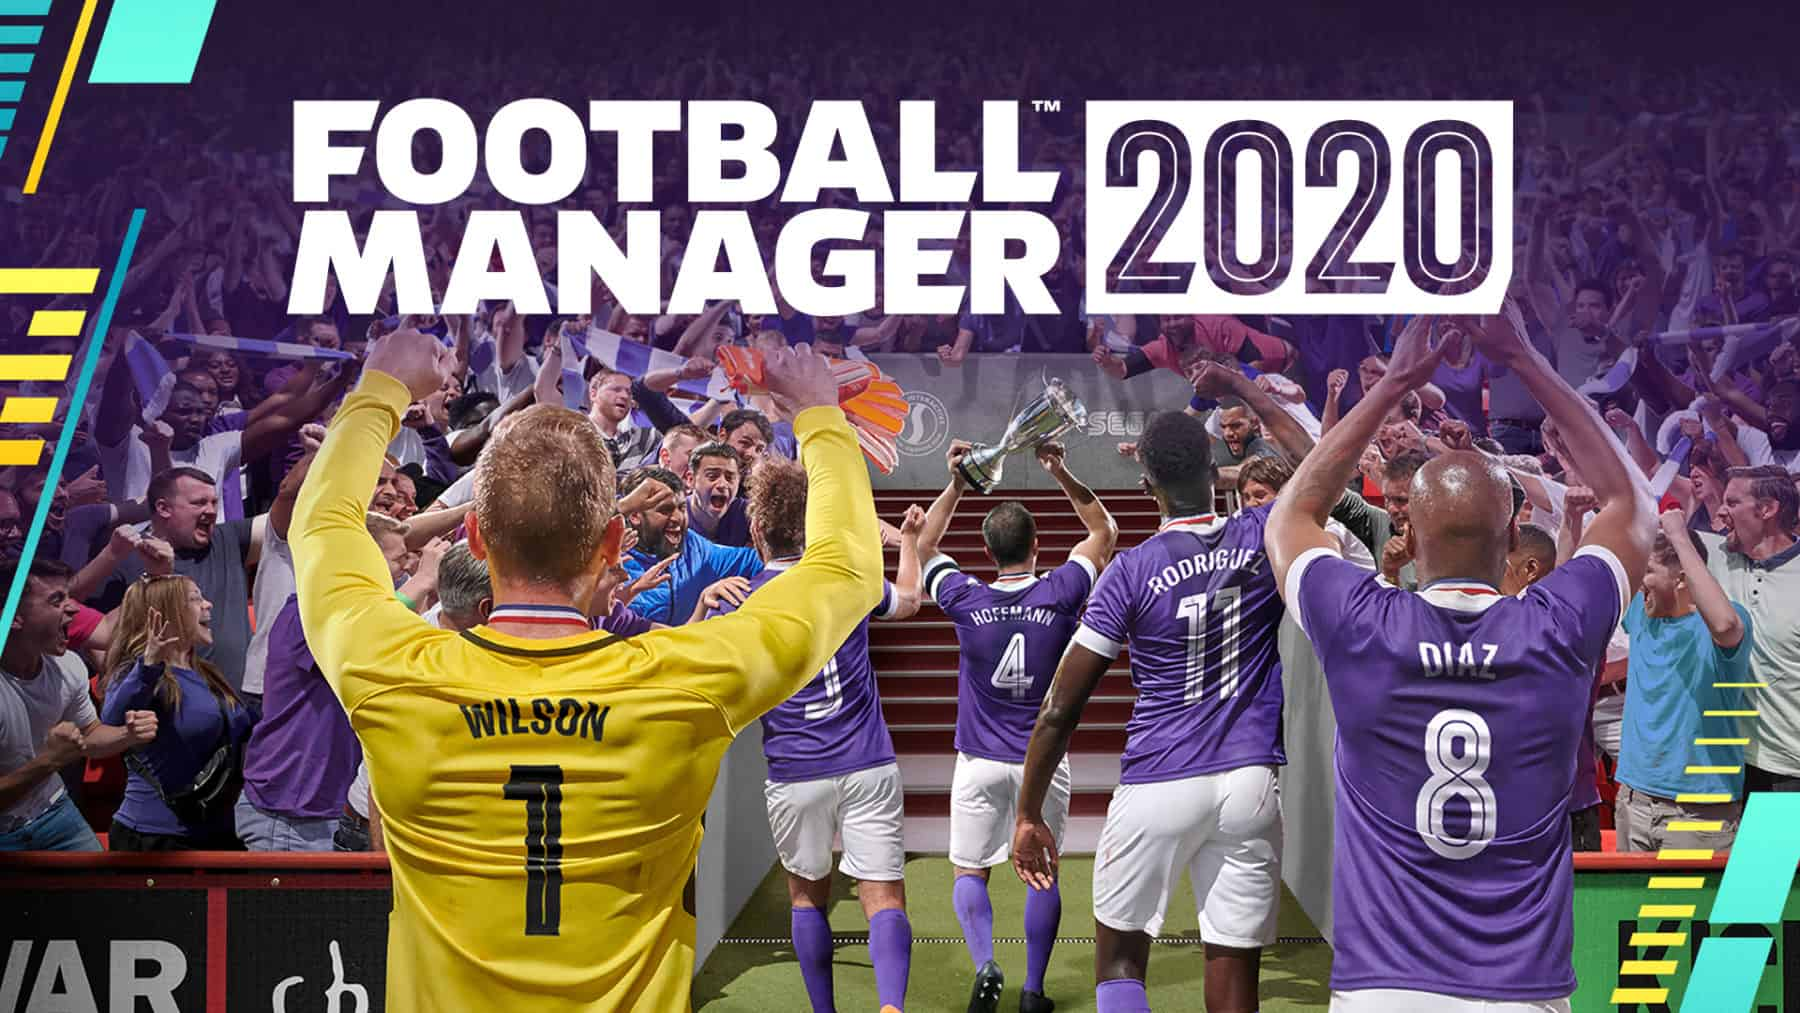 Football Manager disponible gratuitement durant votre confinement